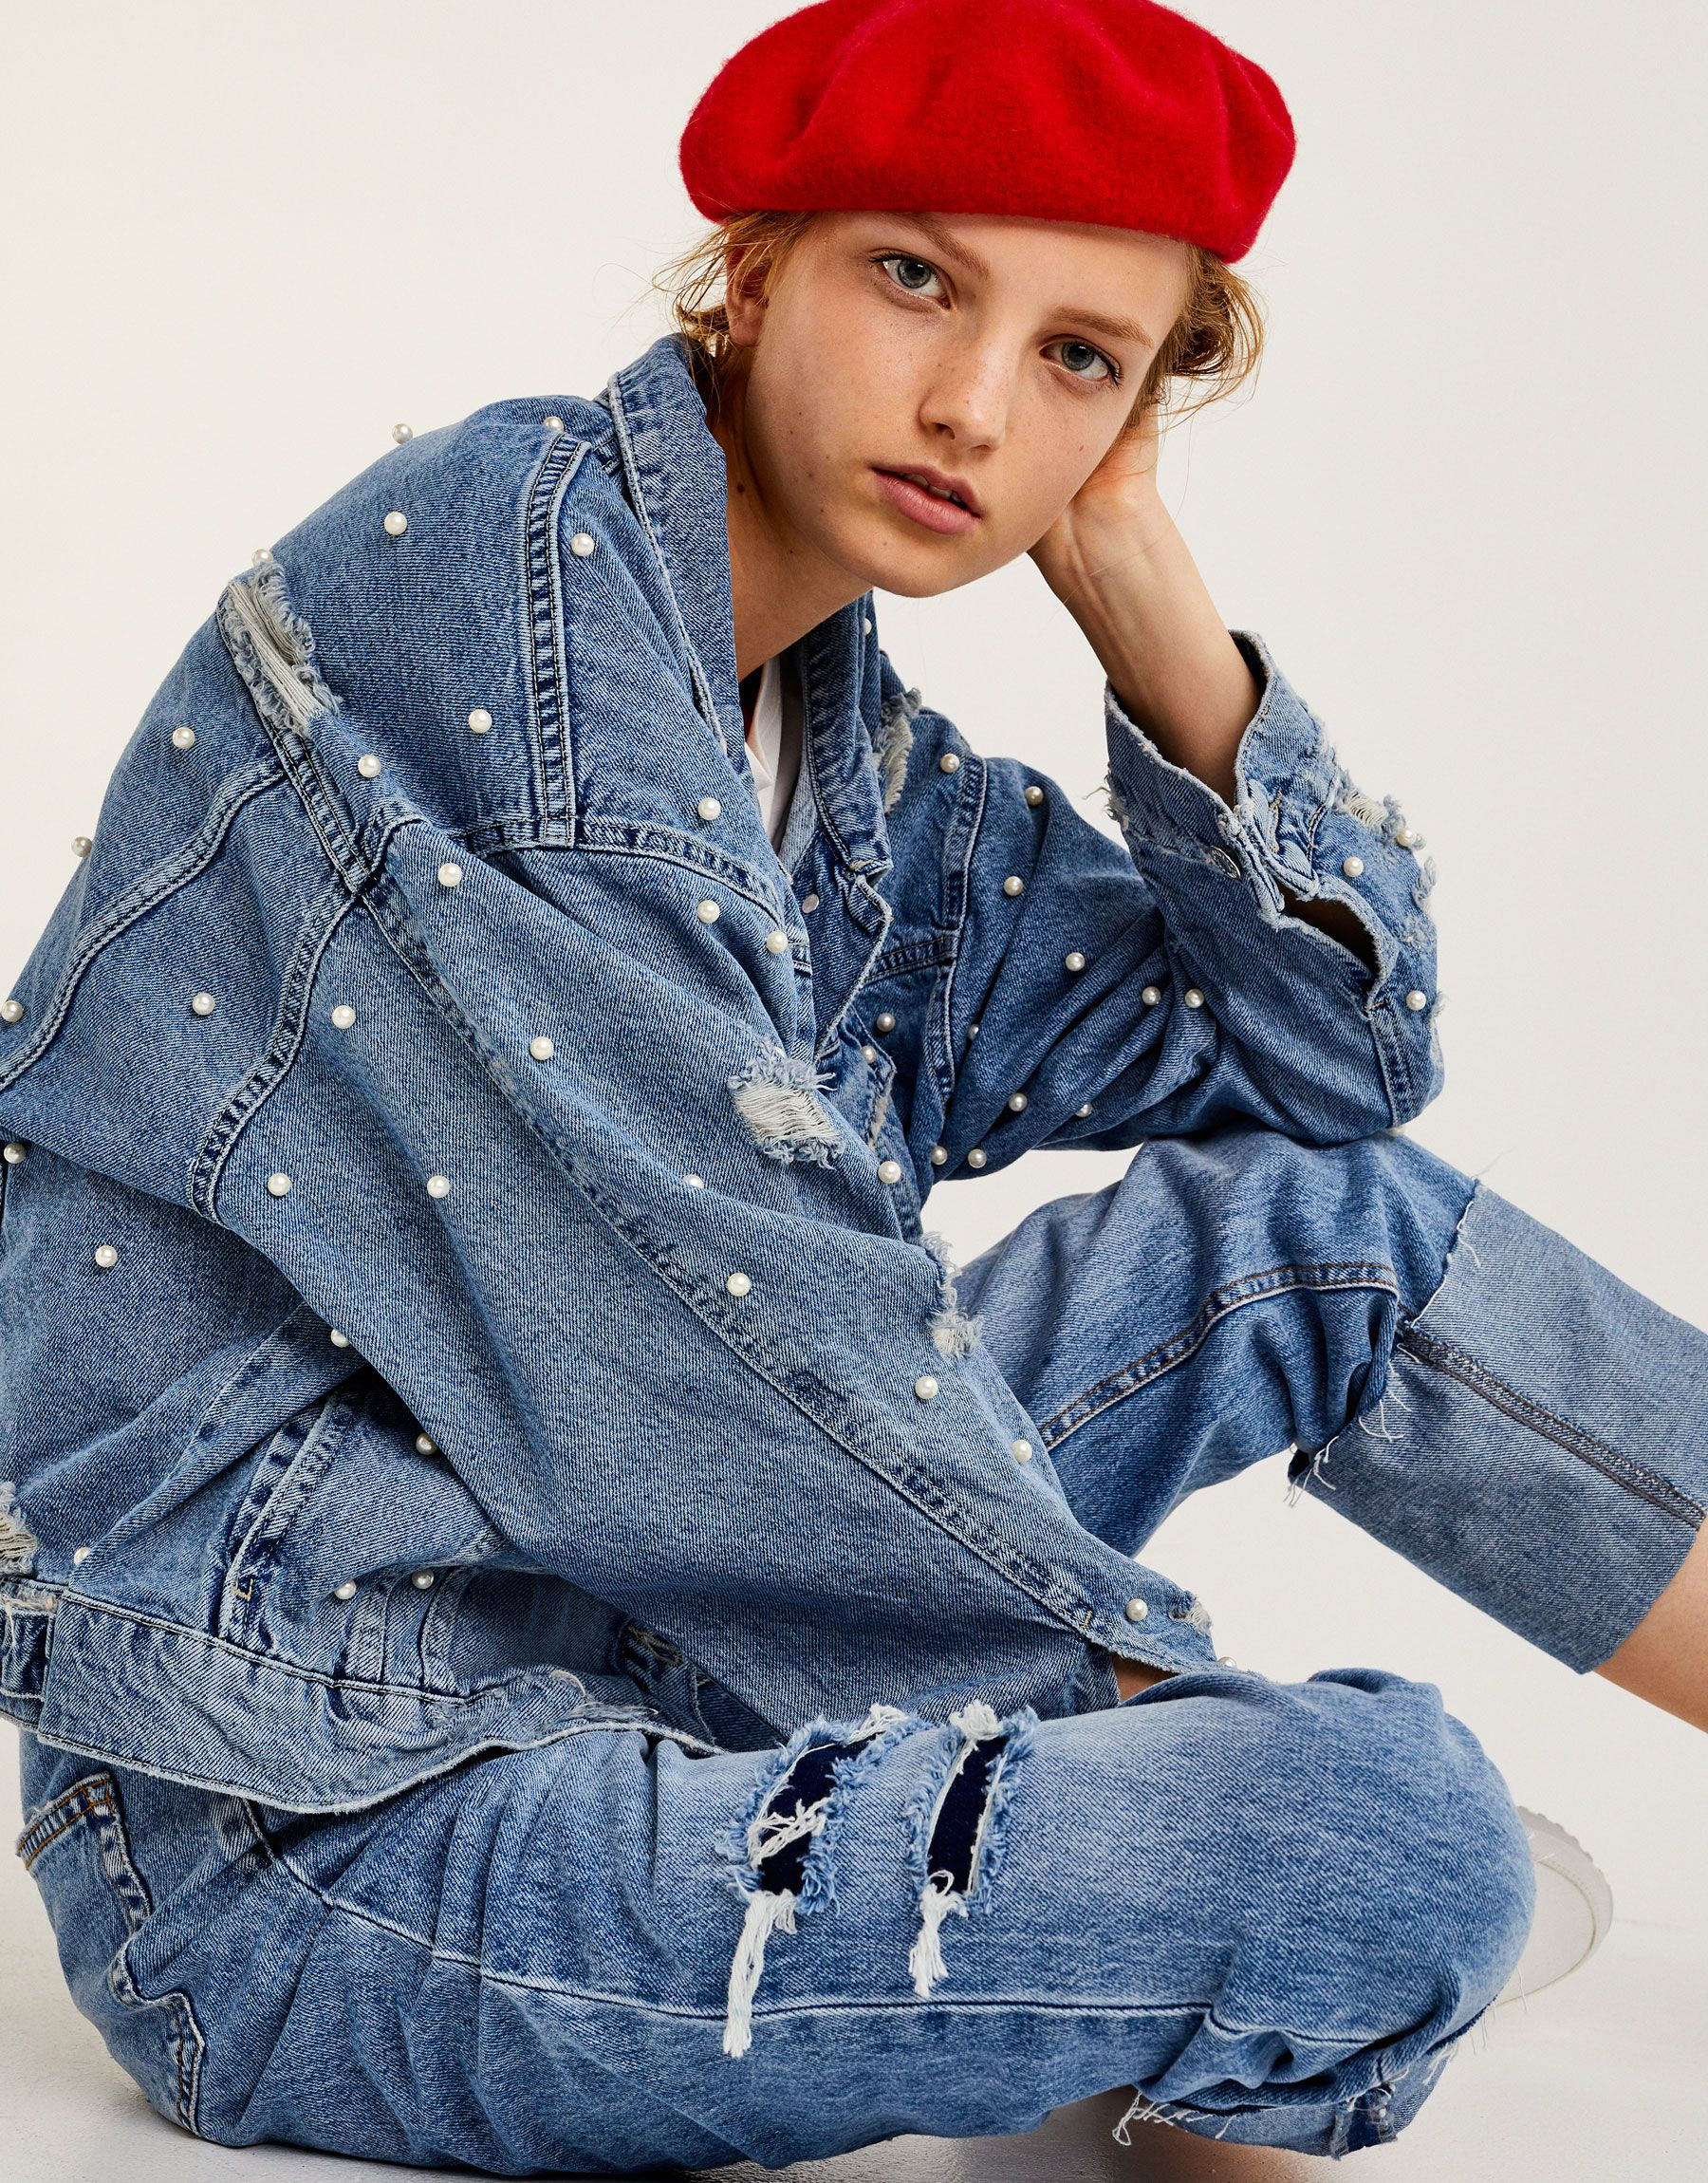 Pull&Bear woman clothing best sellers ❤ oversized